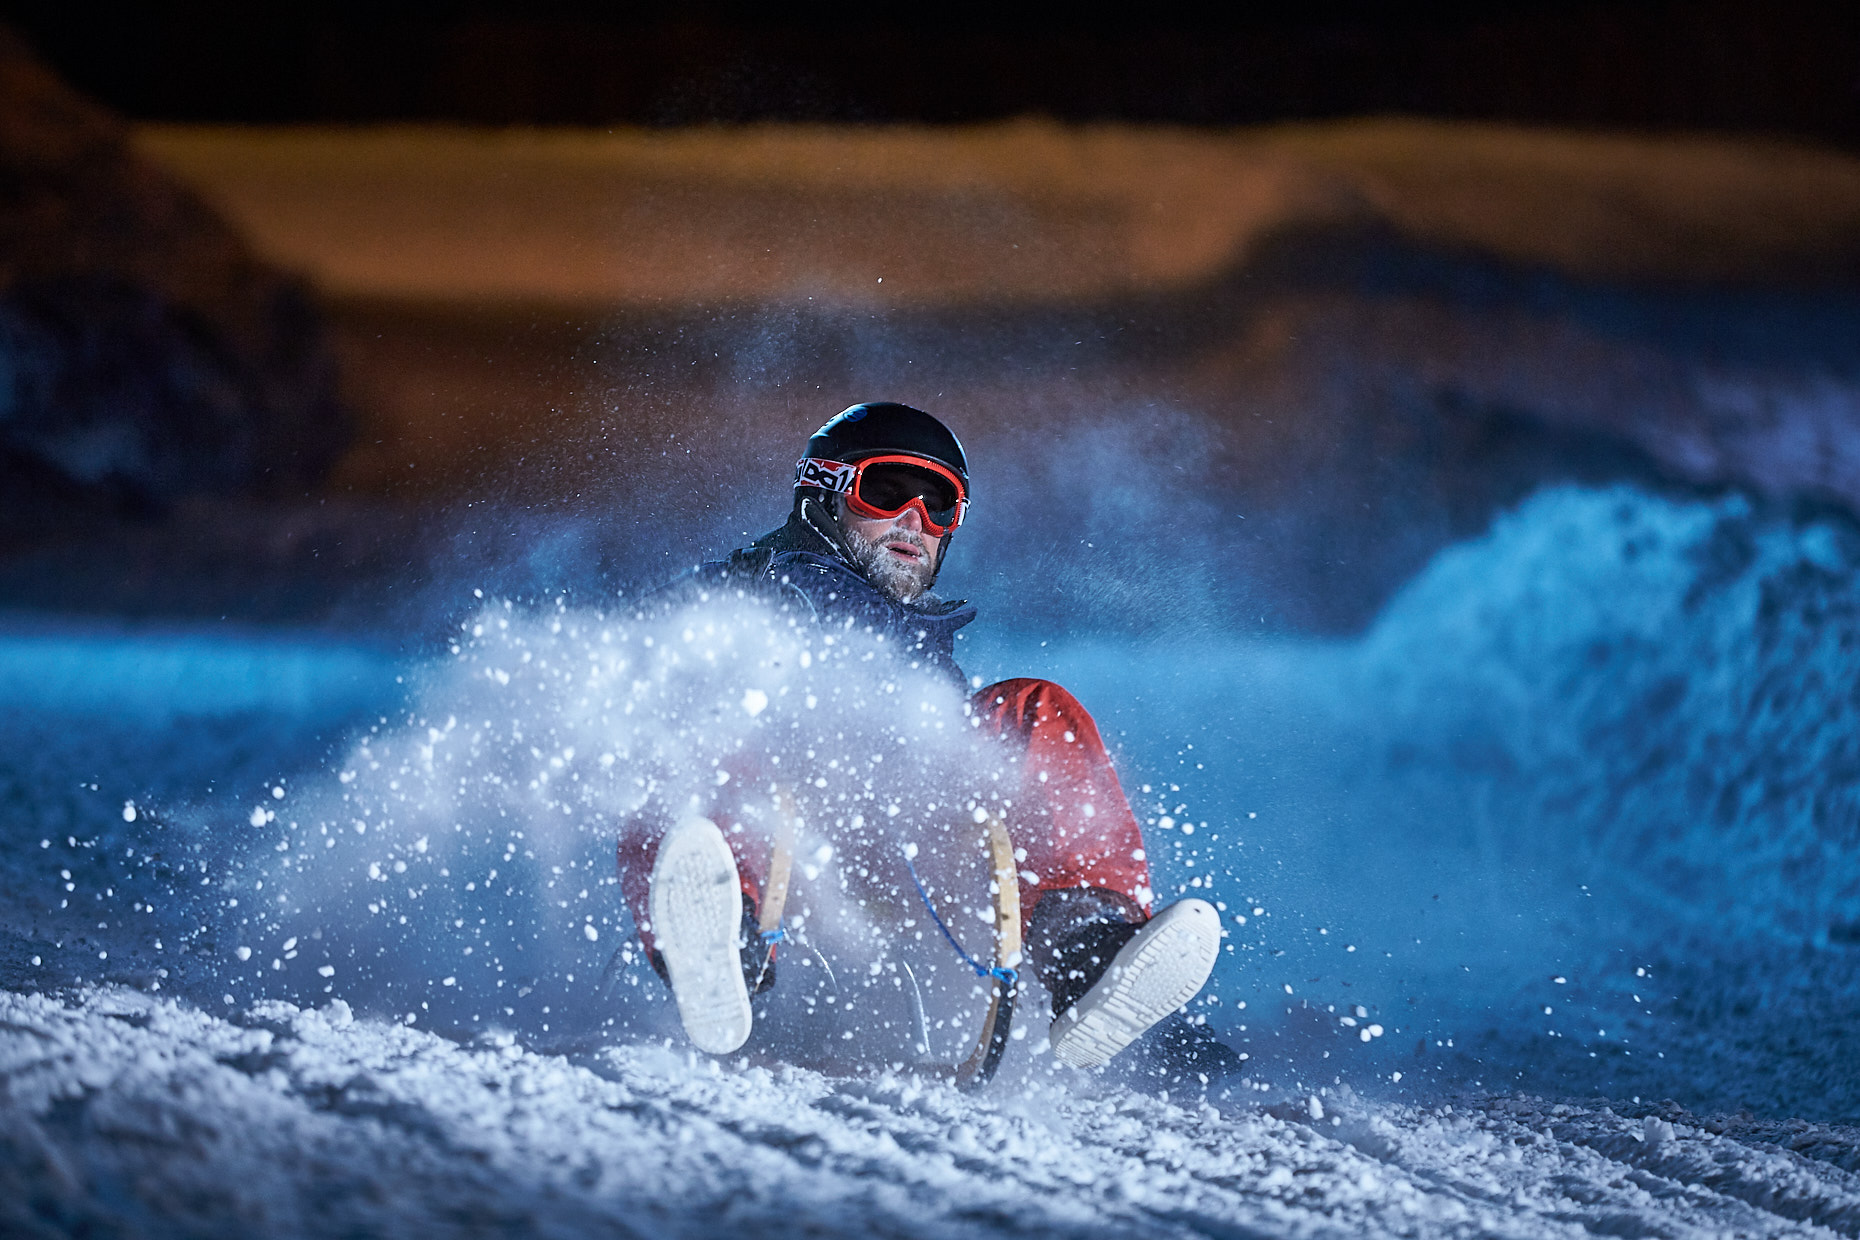 Night sledding | Stefan Kuerzi Tourism Photography